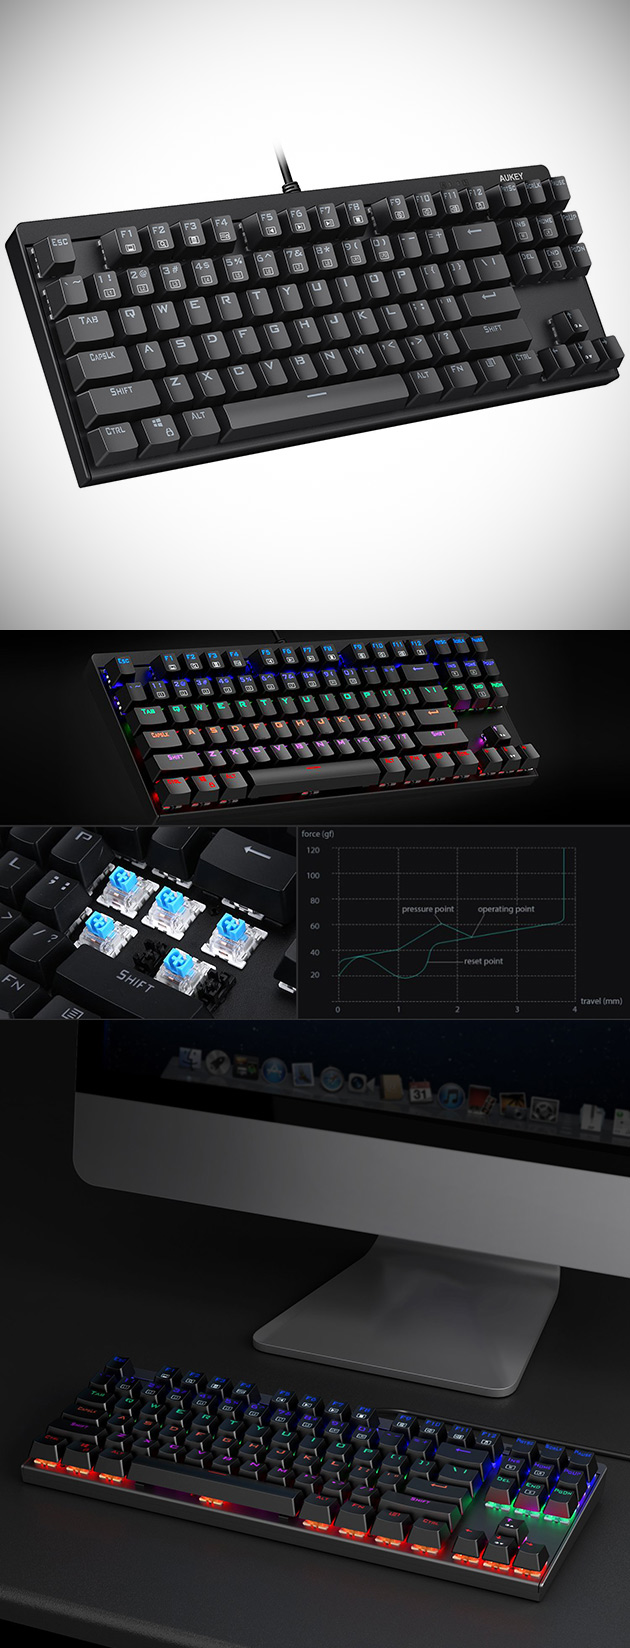 Aukey's 87 Key LED-Backlit Gaming Keyboard Has Blue Switches, Get One for $30.99 - Today Only